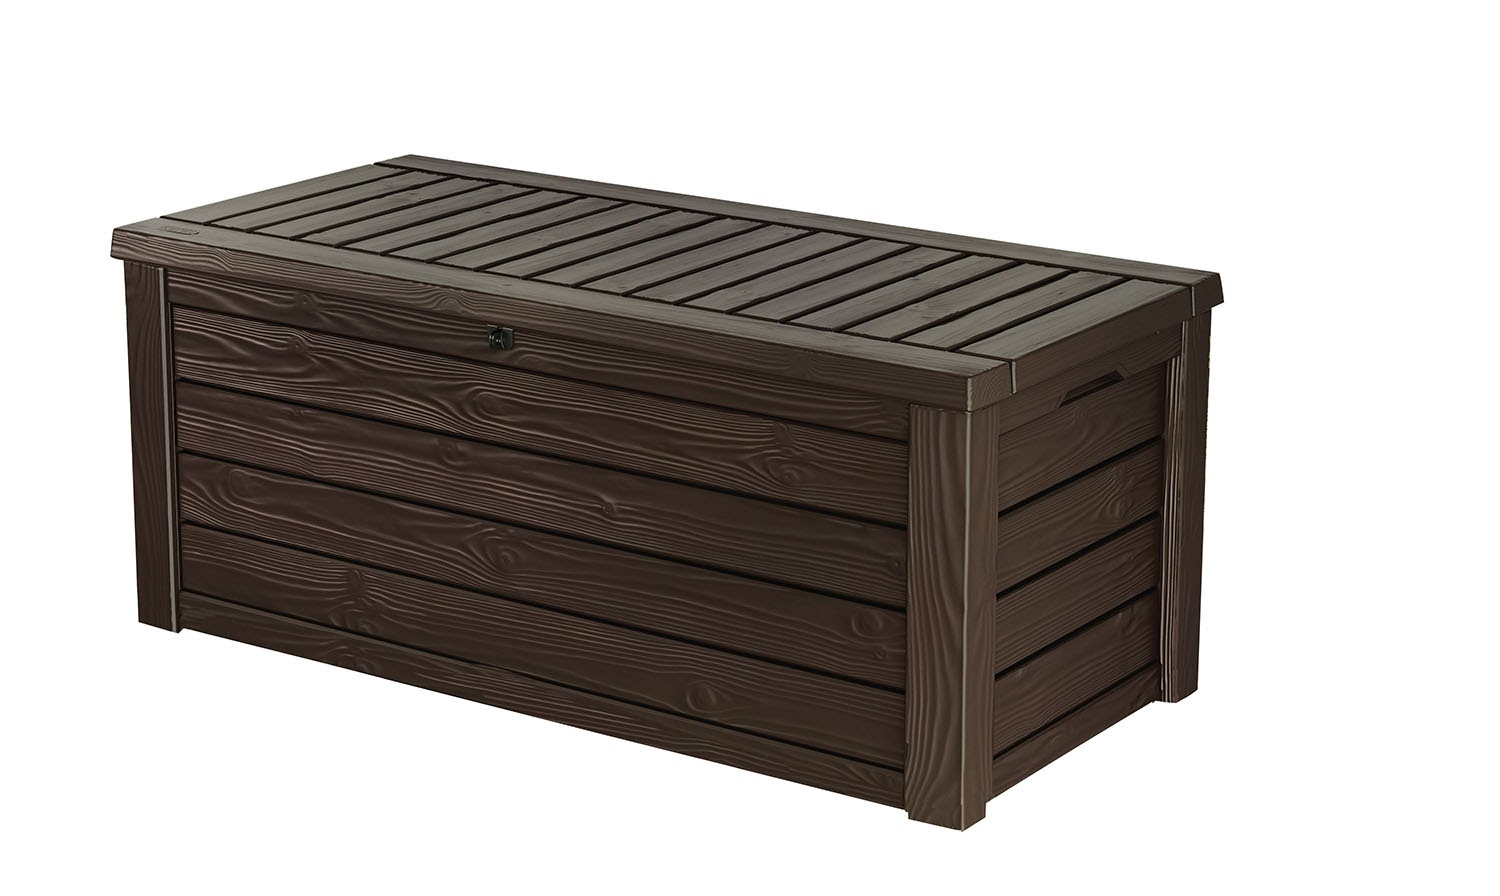 Keter Westwood 150 Gallon Outdoor Deck Box Patio Storage Bench by Deck Boxes